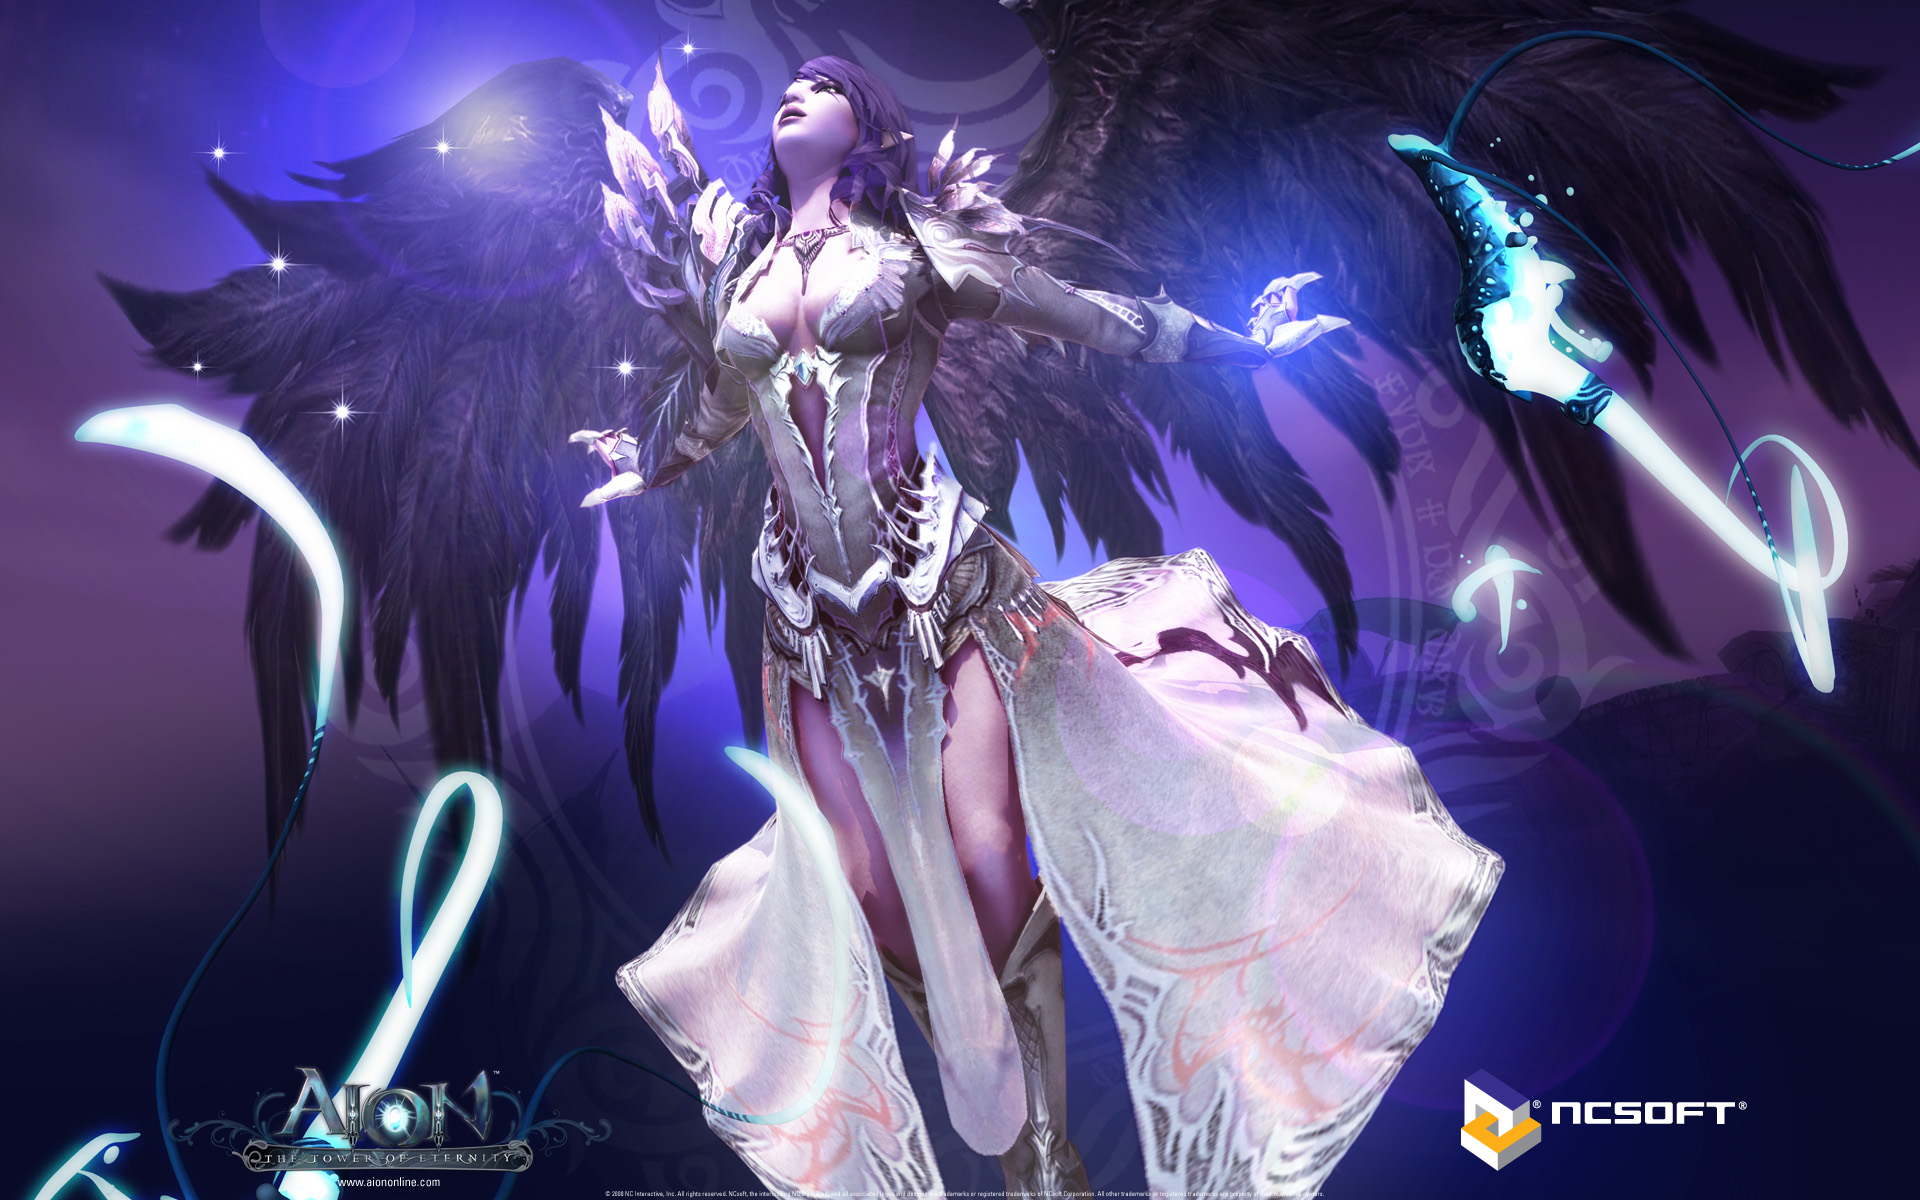 Aion 2 Wallpapers HD Wallpapers 1920x1200